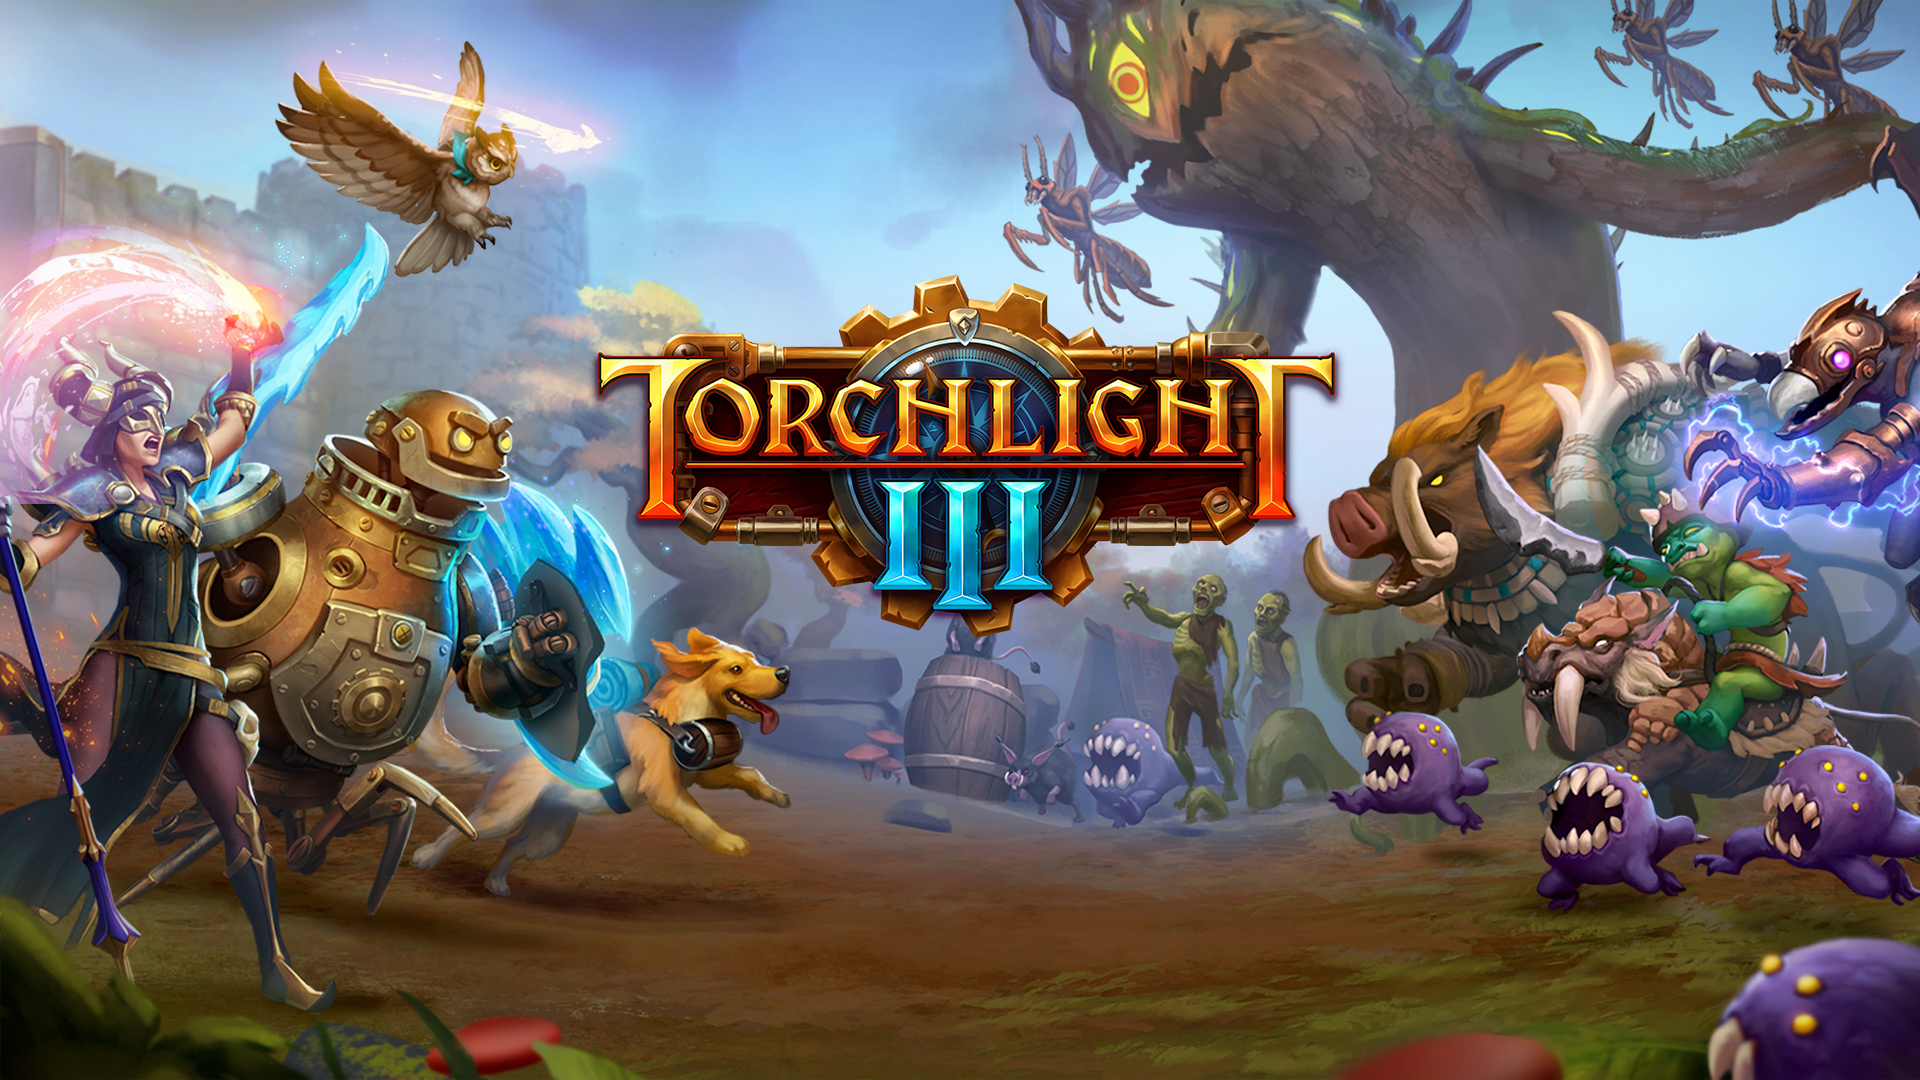 Key Art for Torchlight III